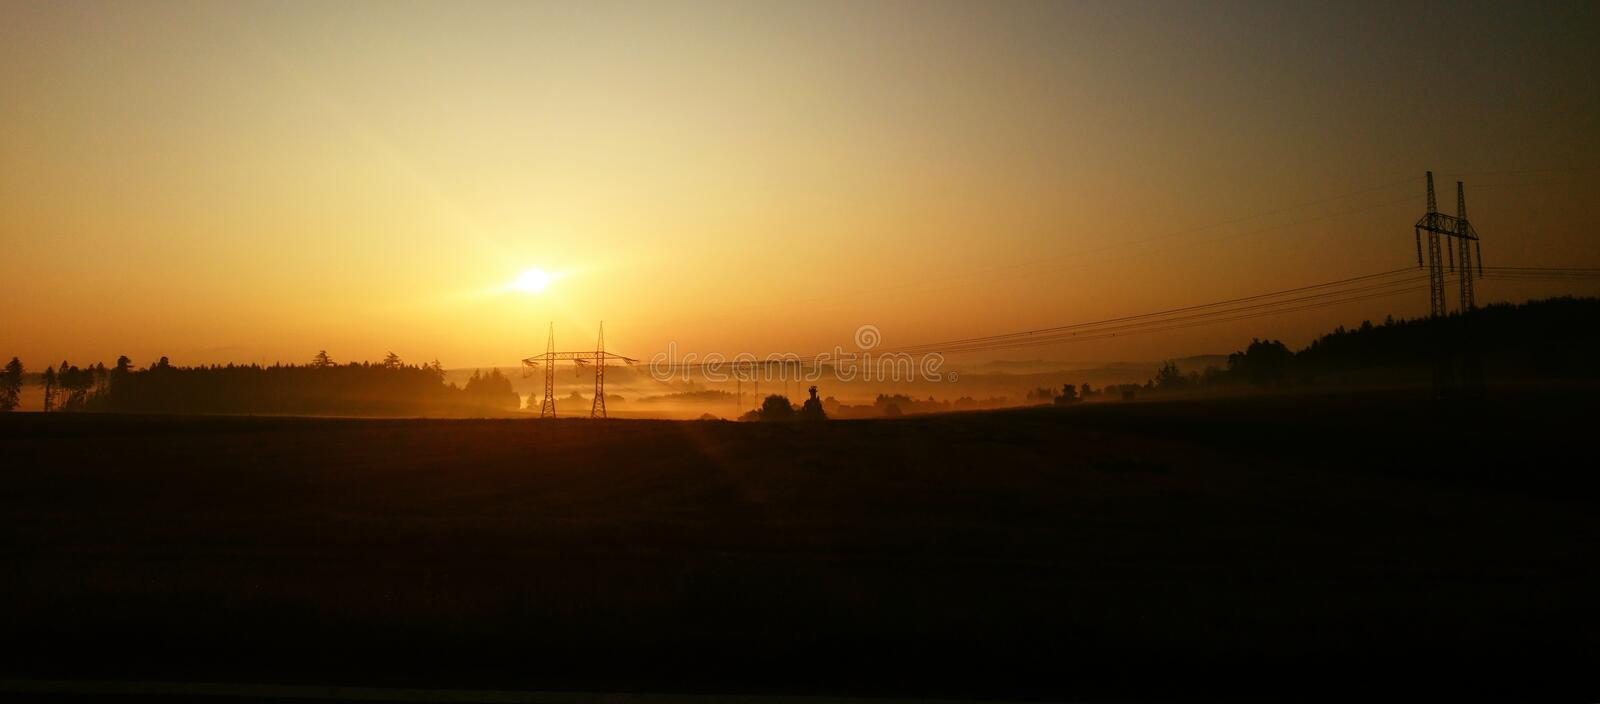 Beautiful Sunrise over Landscape with Electricity Pylons stock photography